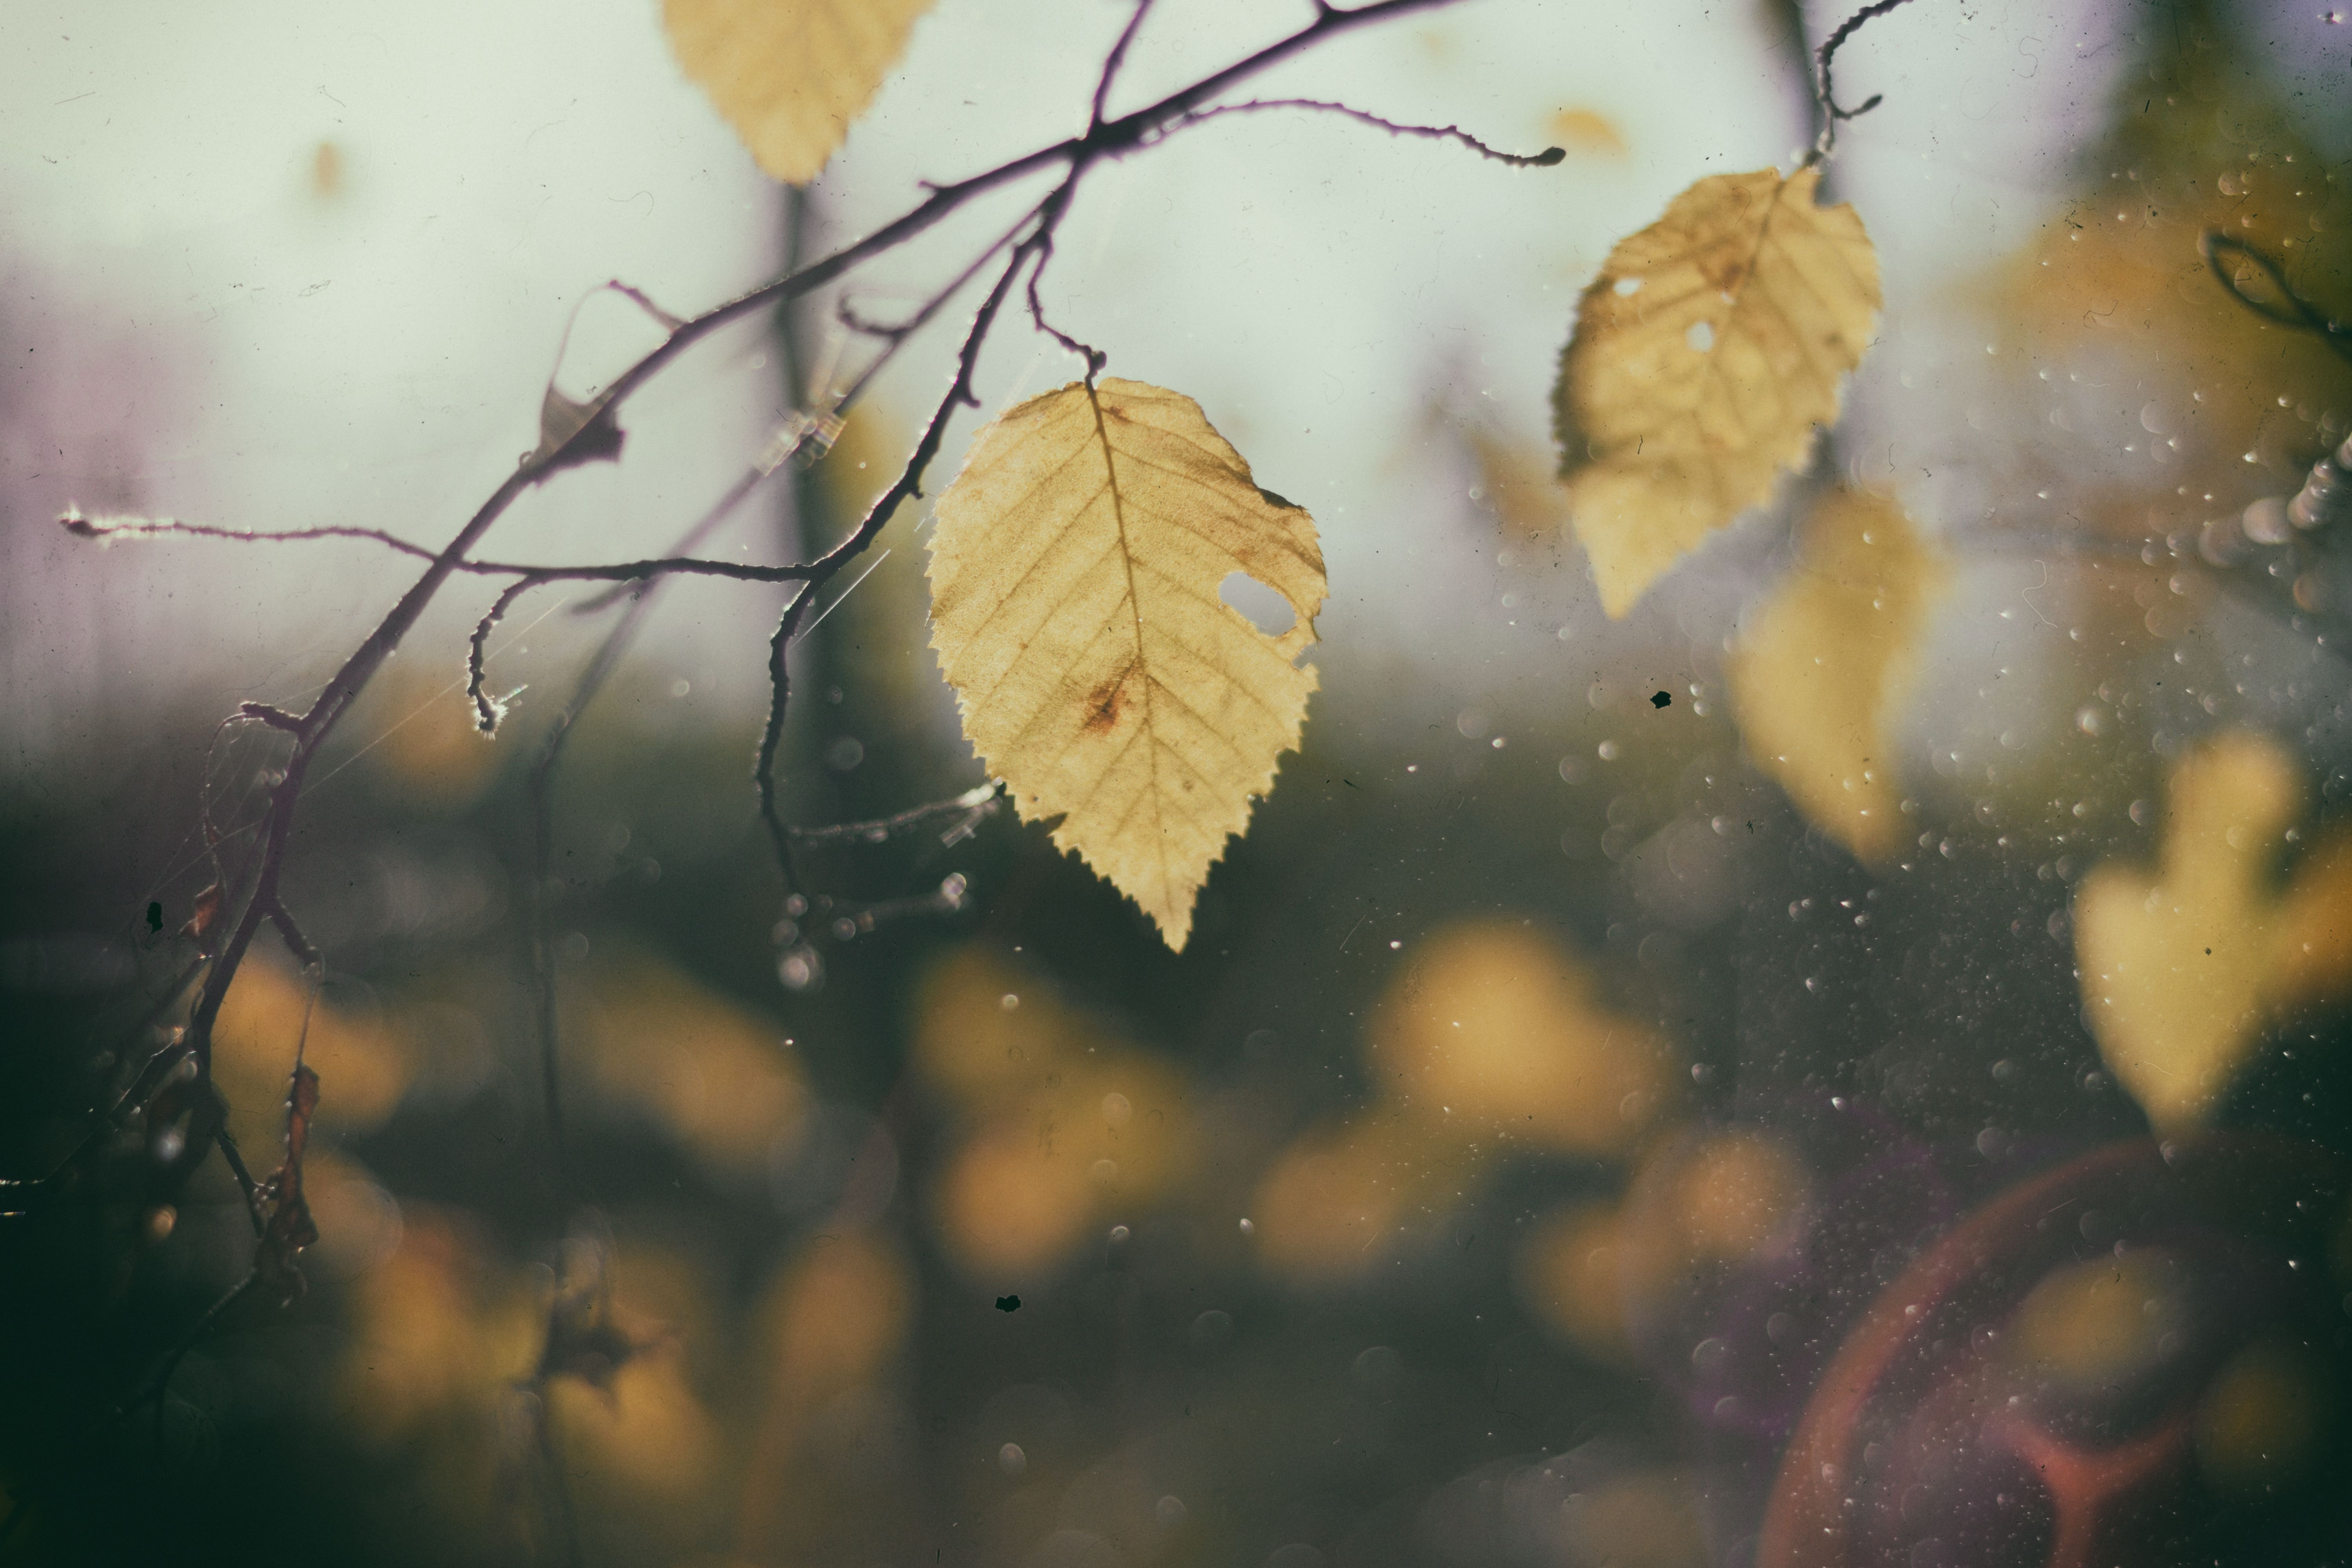 A gloomy shot of yellow autumn leaves on cobweb-covered branches